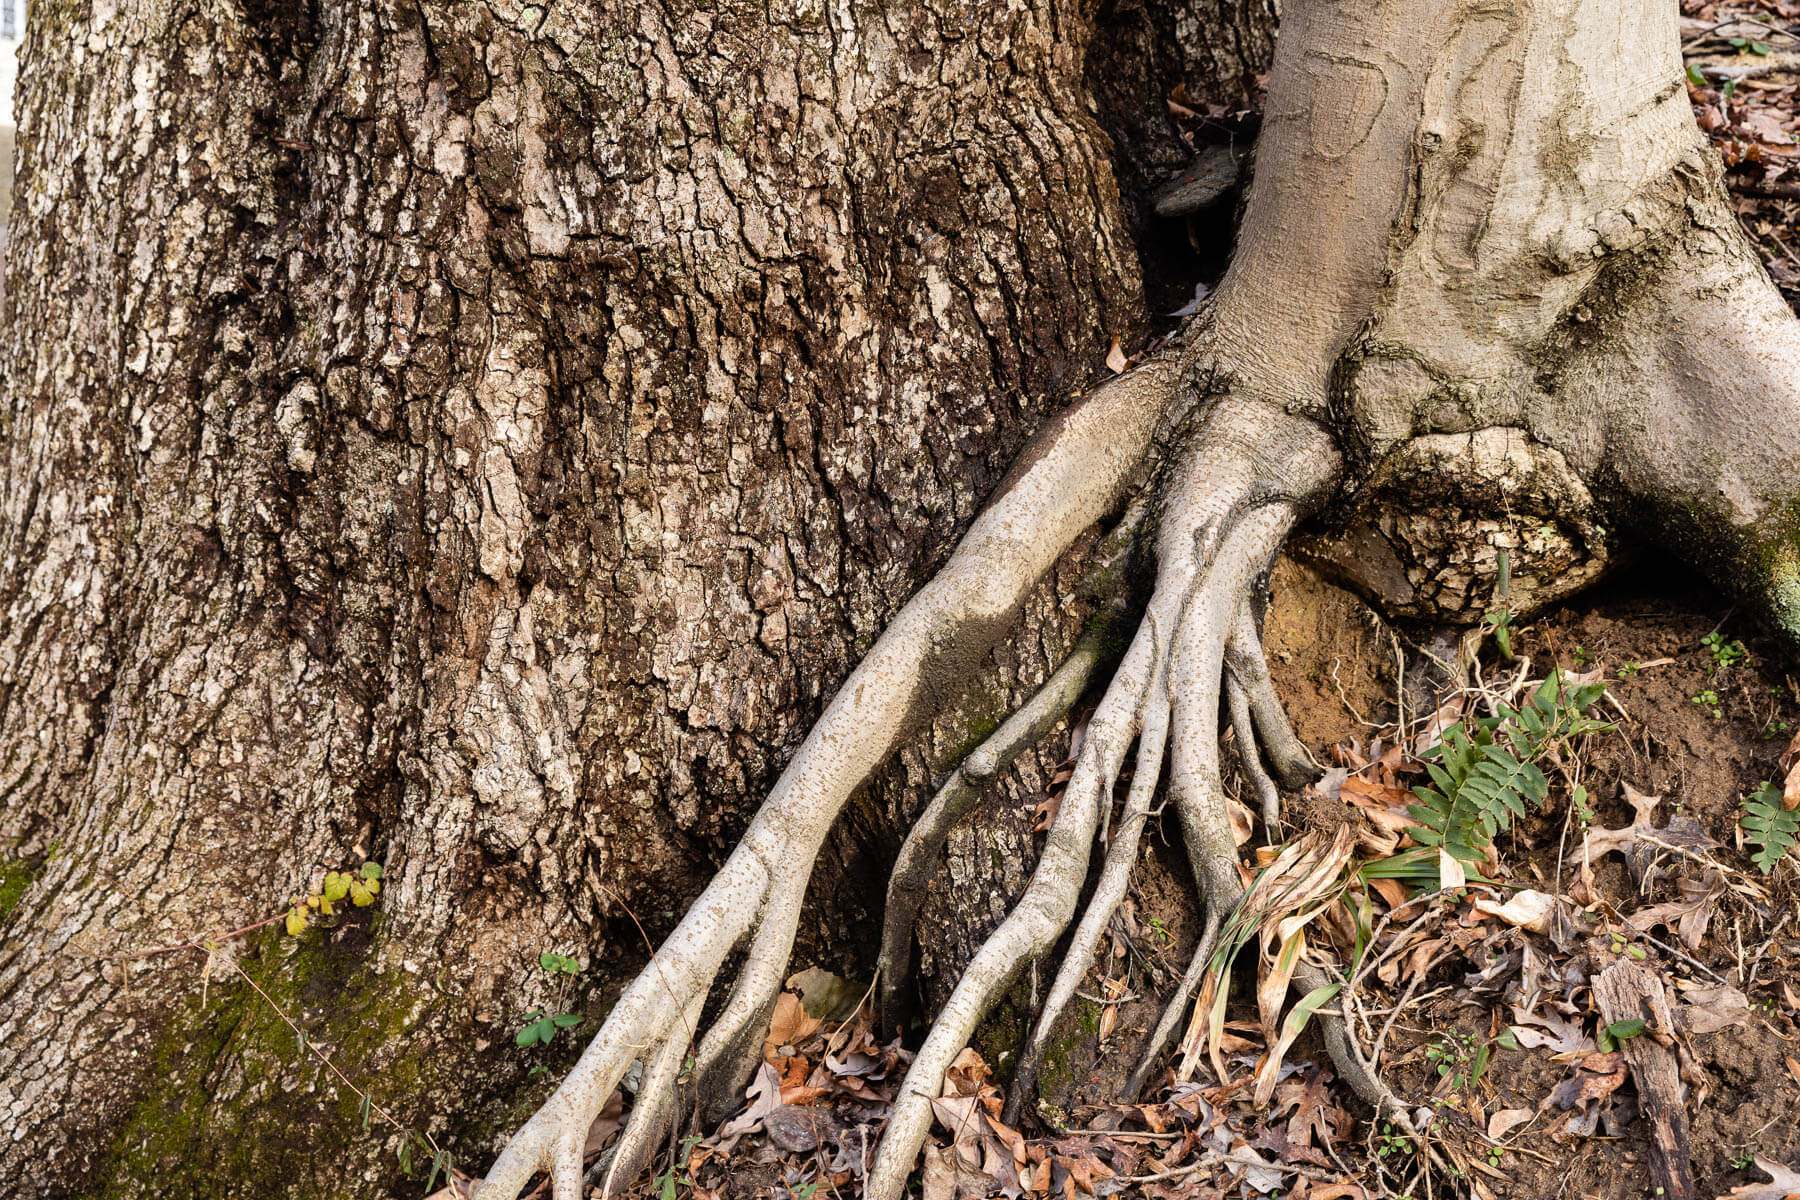 The roots of a smaller tree overlap with the base of a larger one.